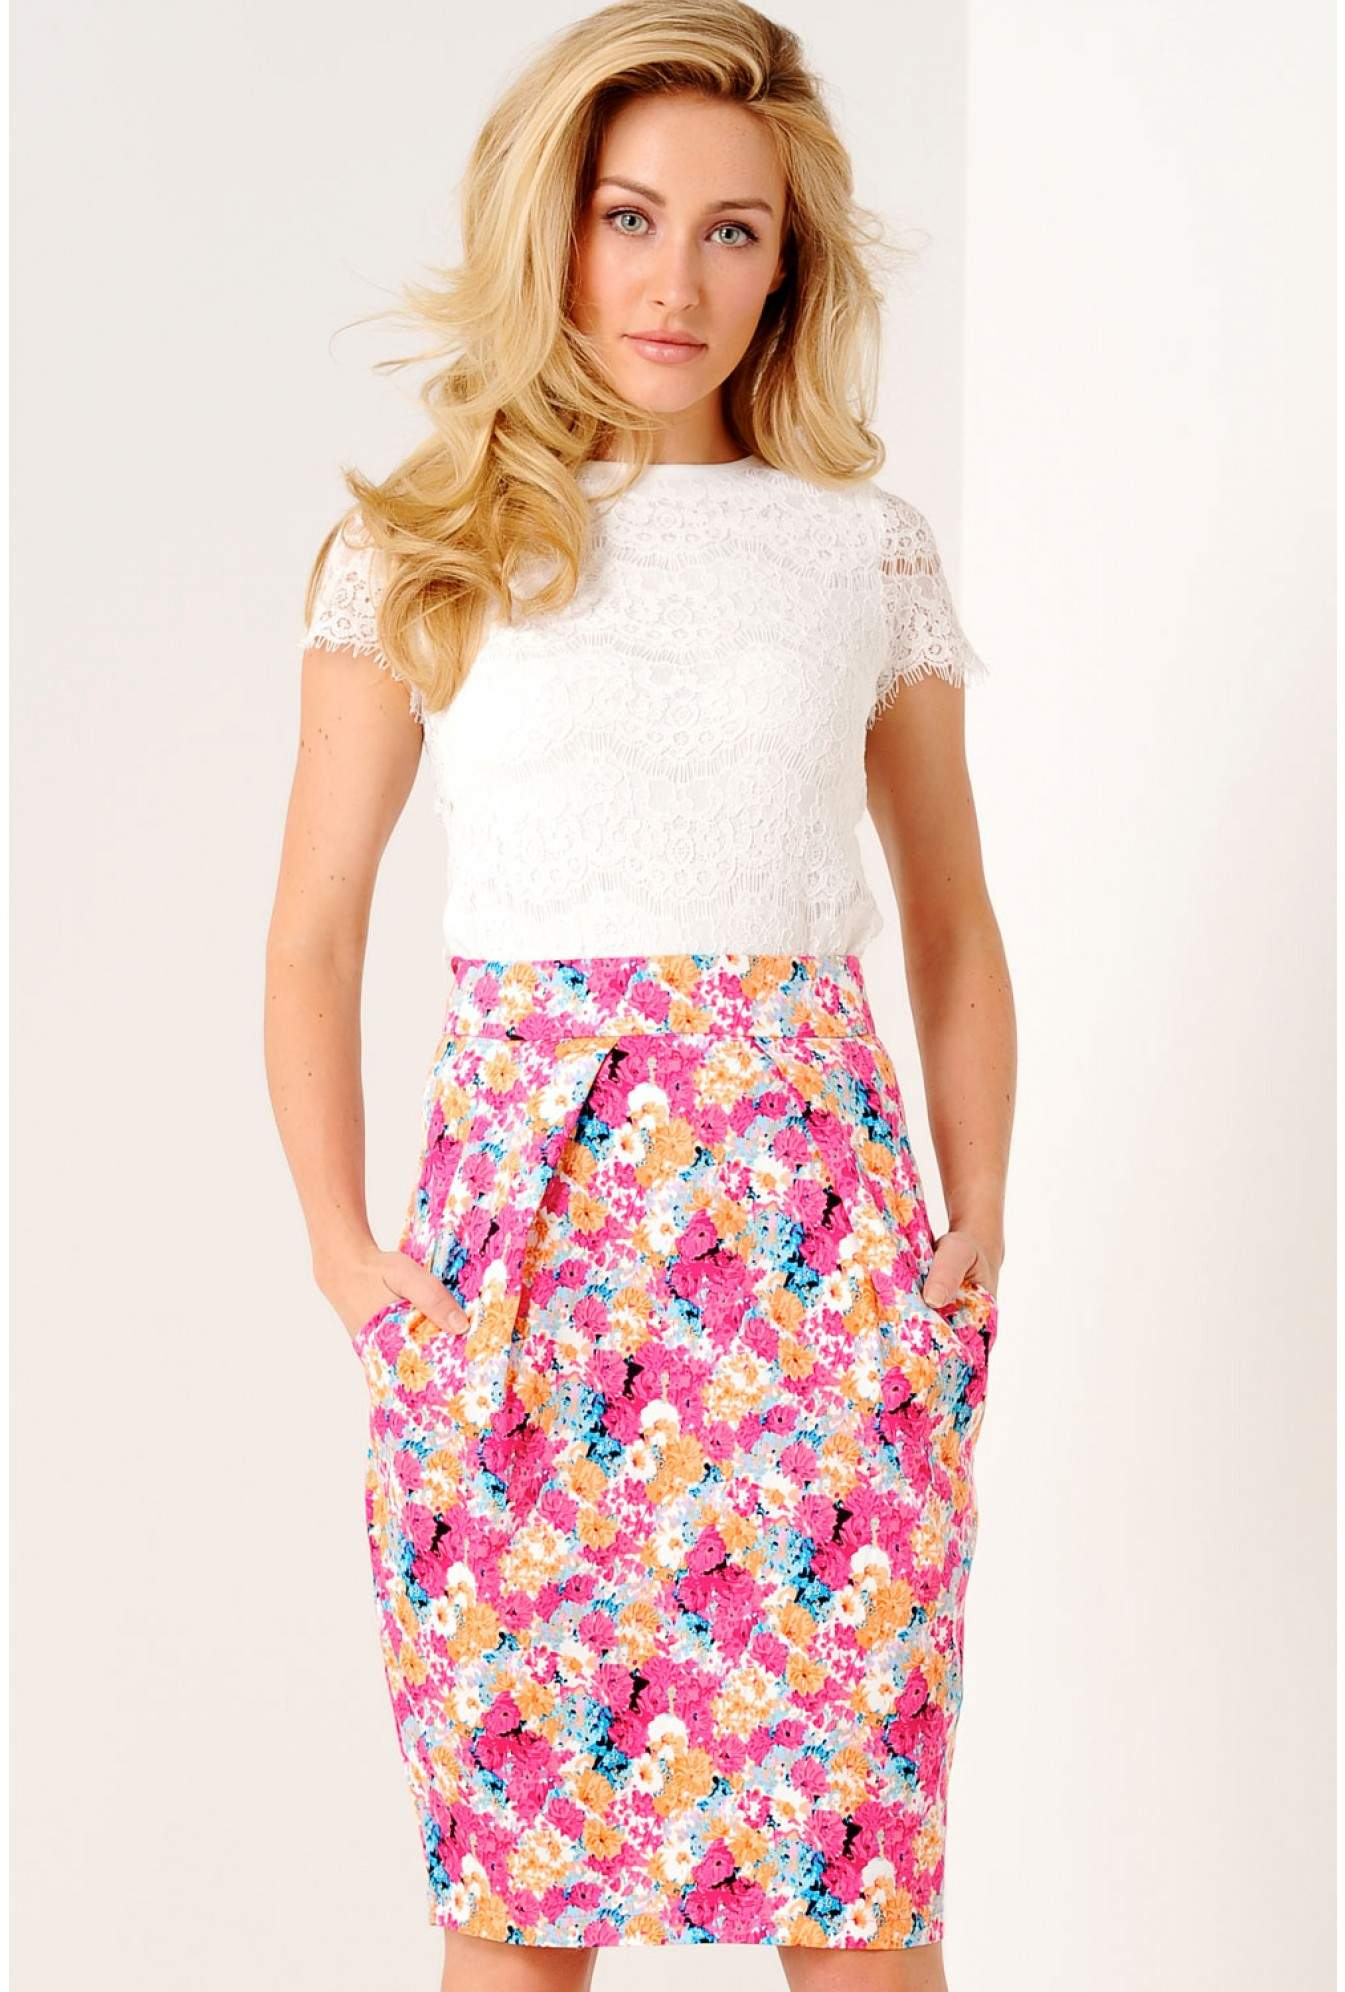 17808e3979 iCLOTHING Trudy Floral Tulip Skirt in Pink | iCLOTHING